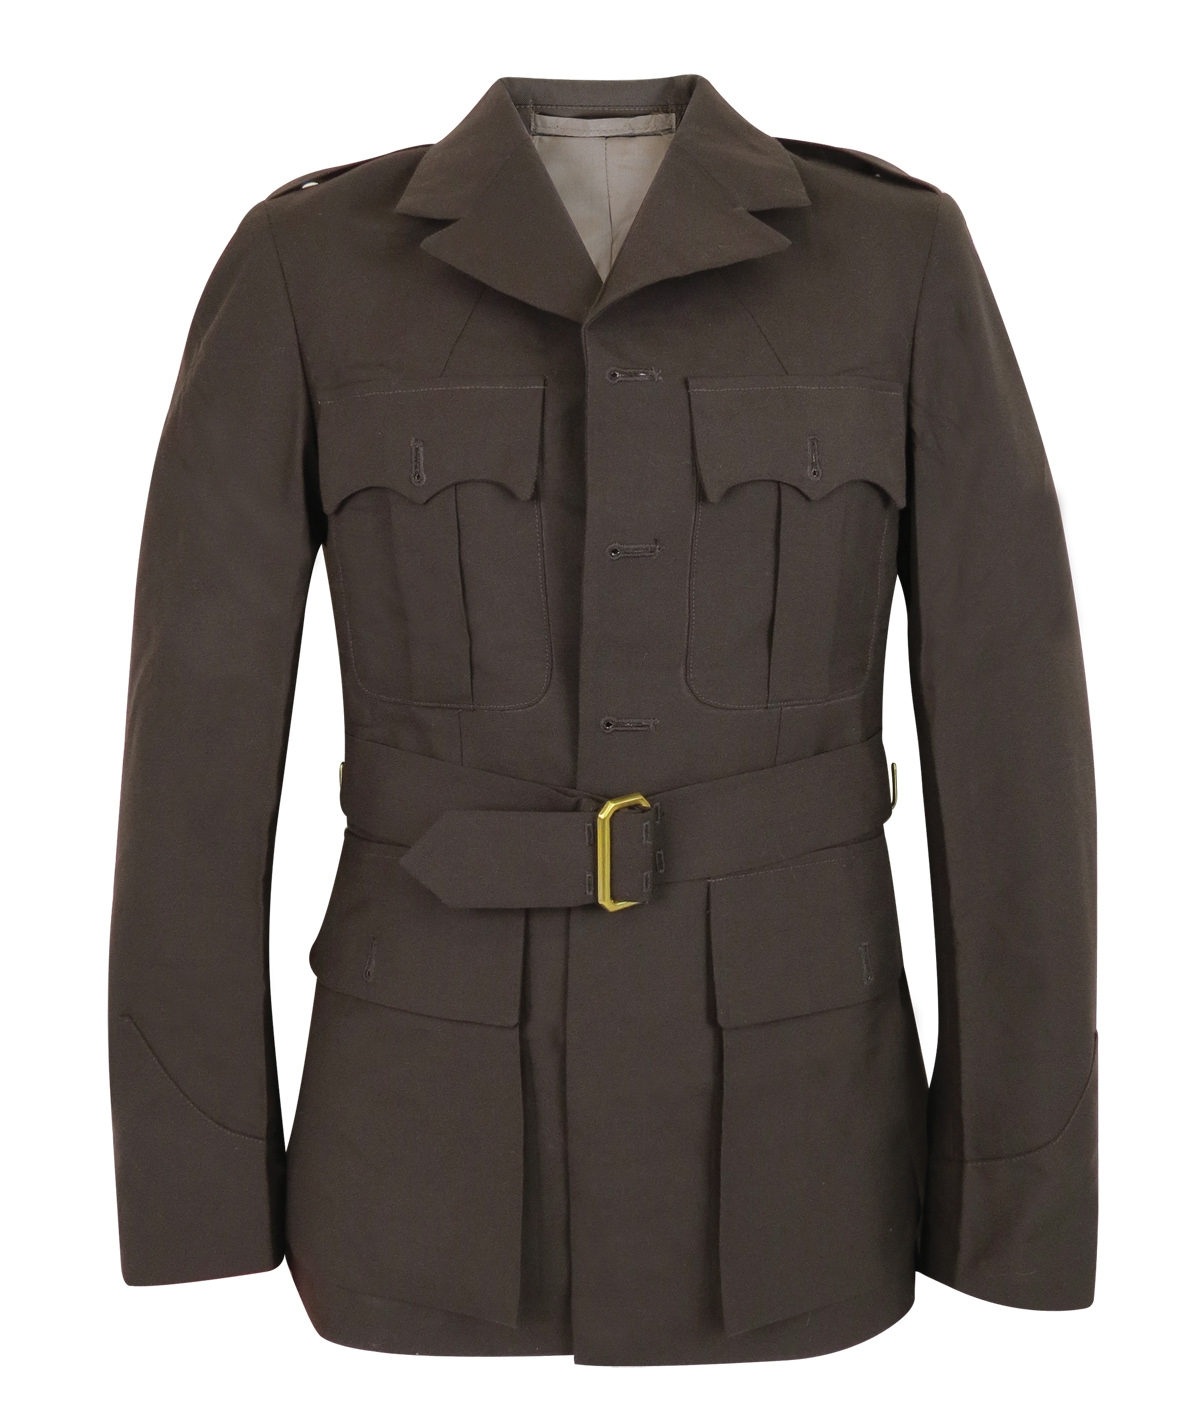 South African Army Tunic